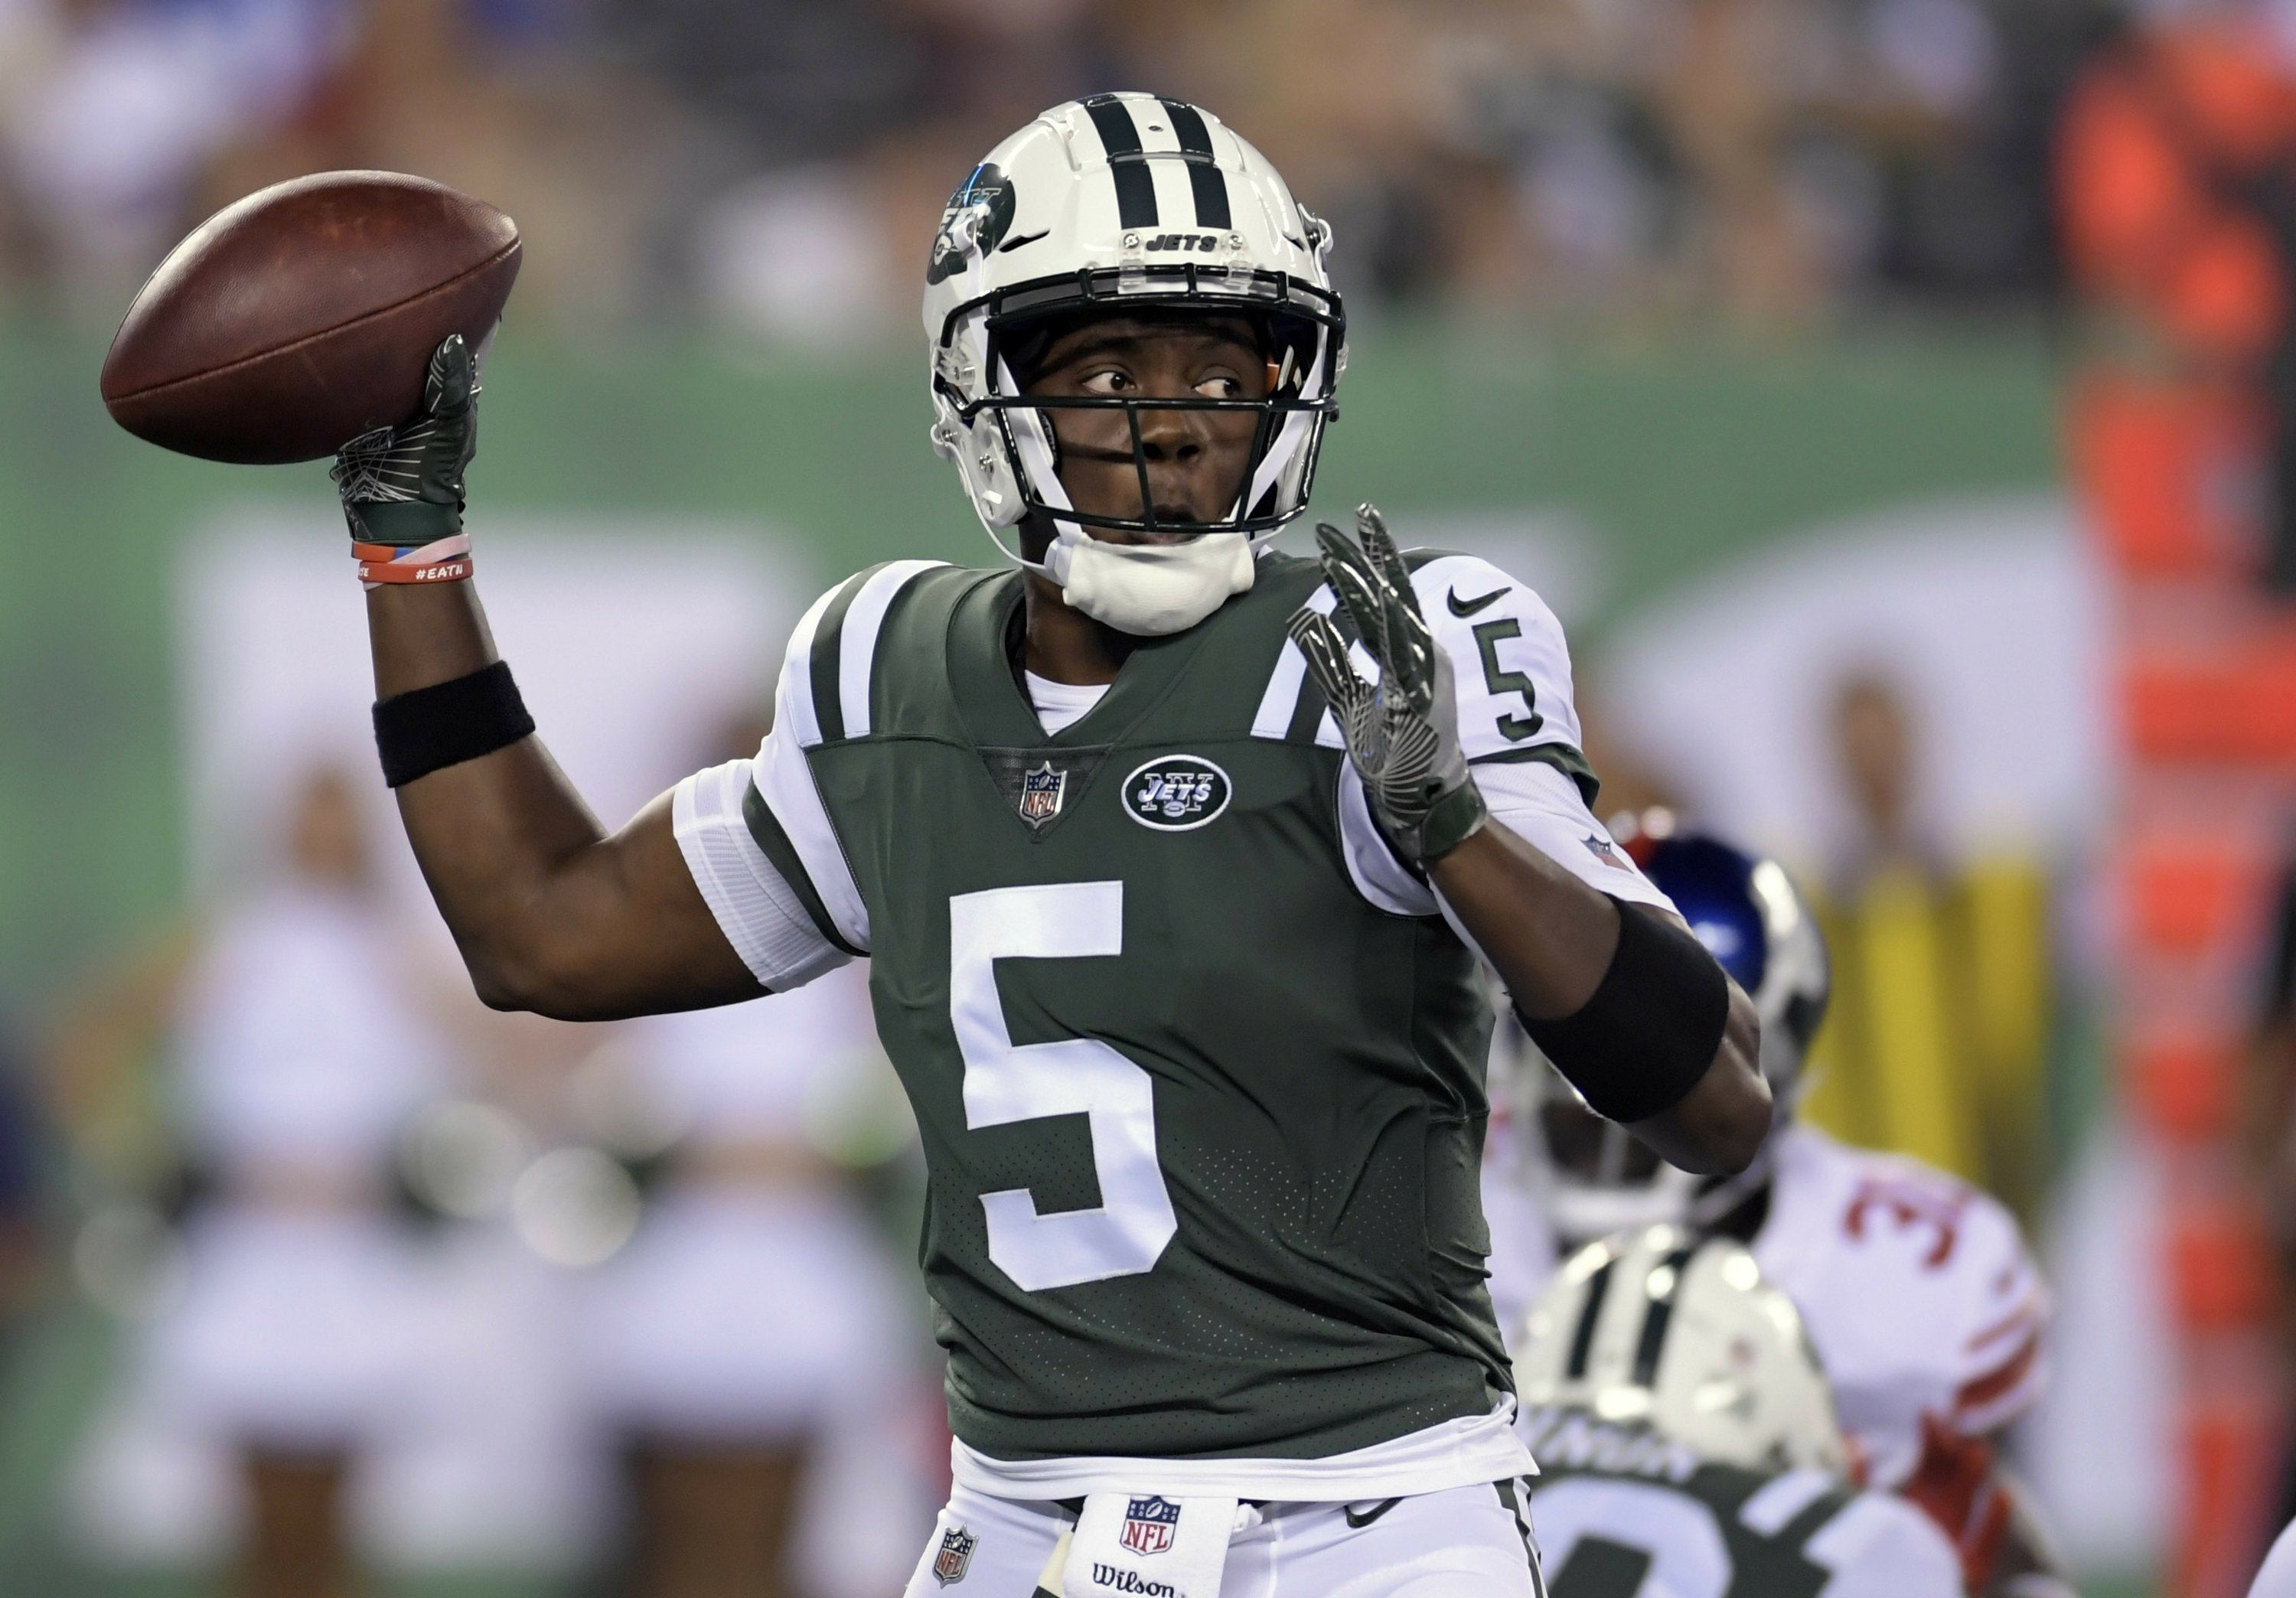 separation shoes 1f9ea 7756b Saints acquire QB Teddy Bridgewater from Jets